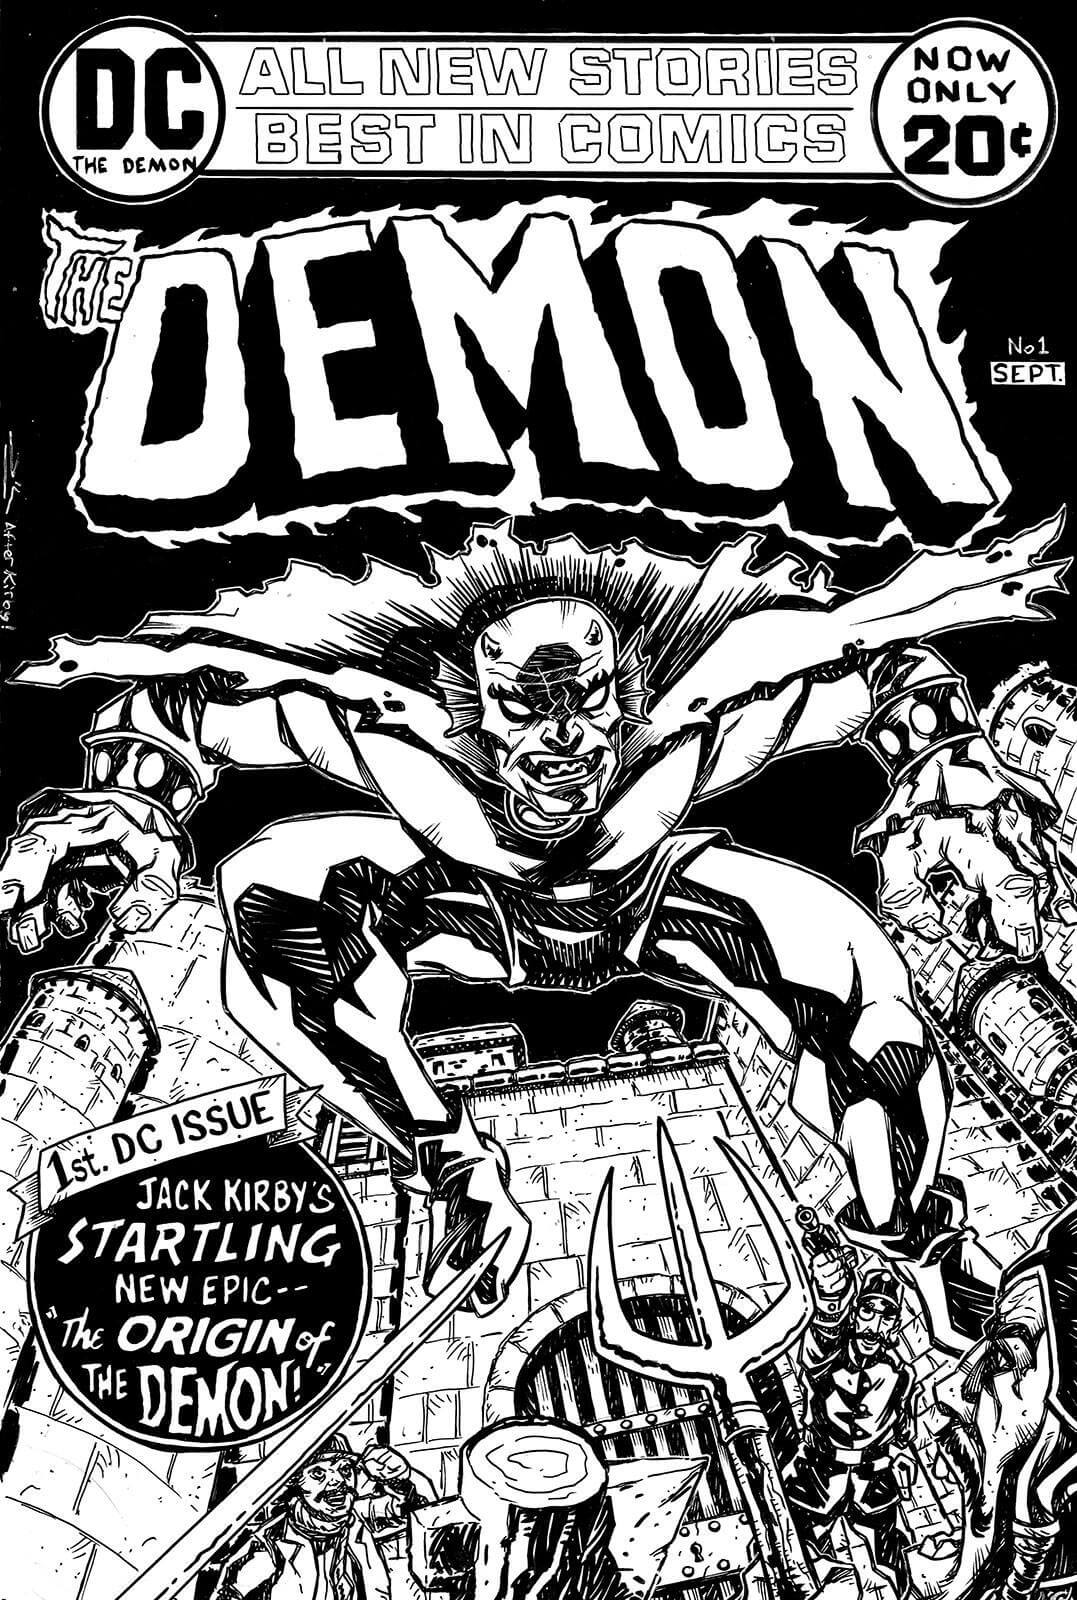 The Demon No. 1 Cover by Rich Woodall